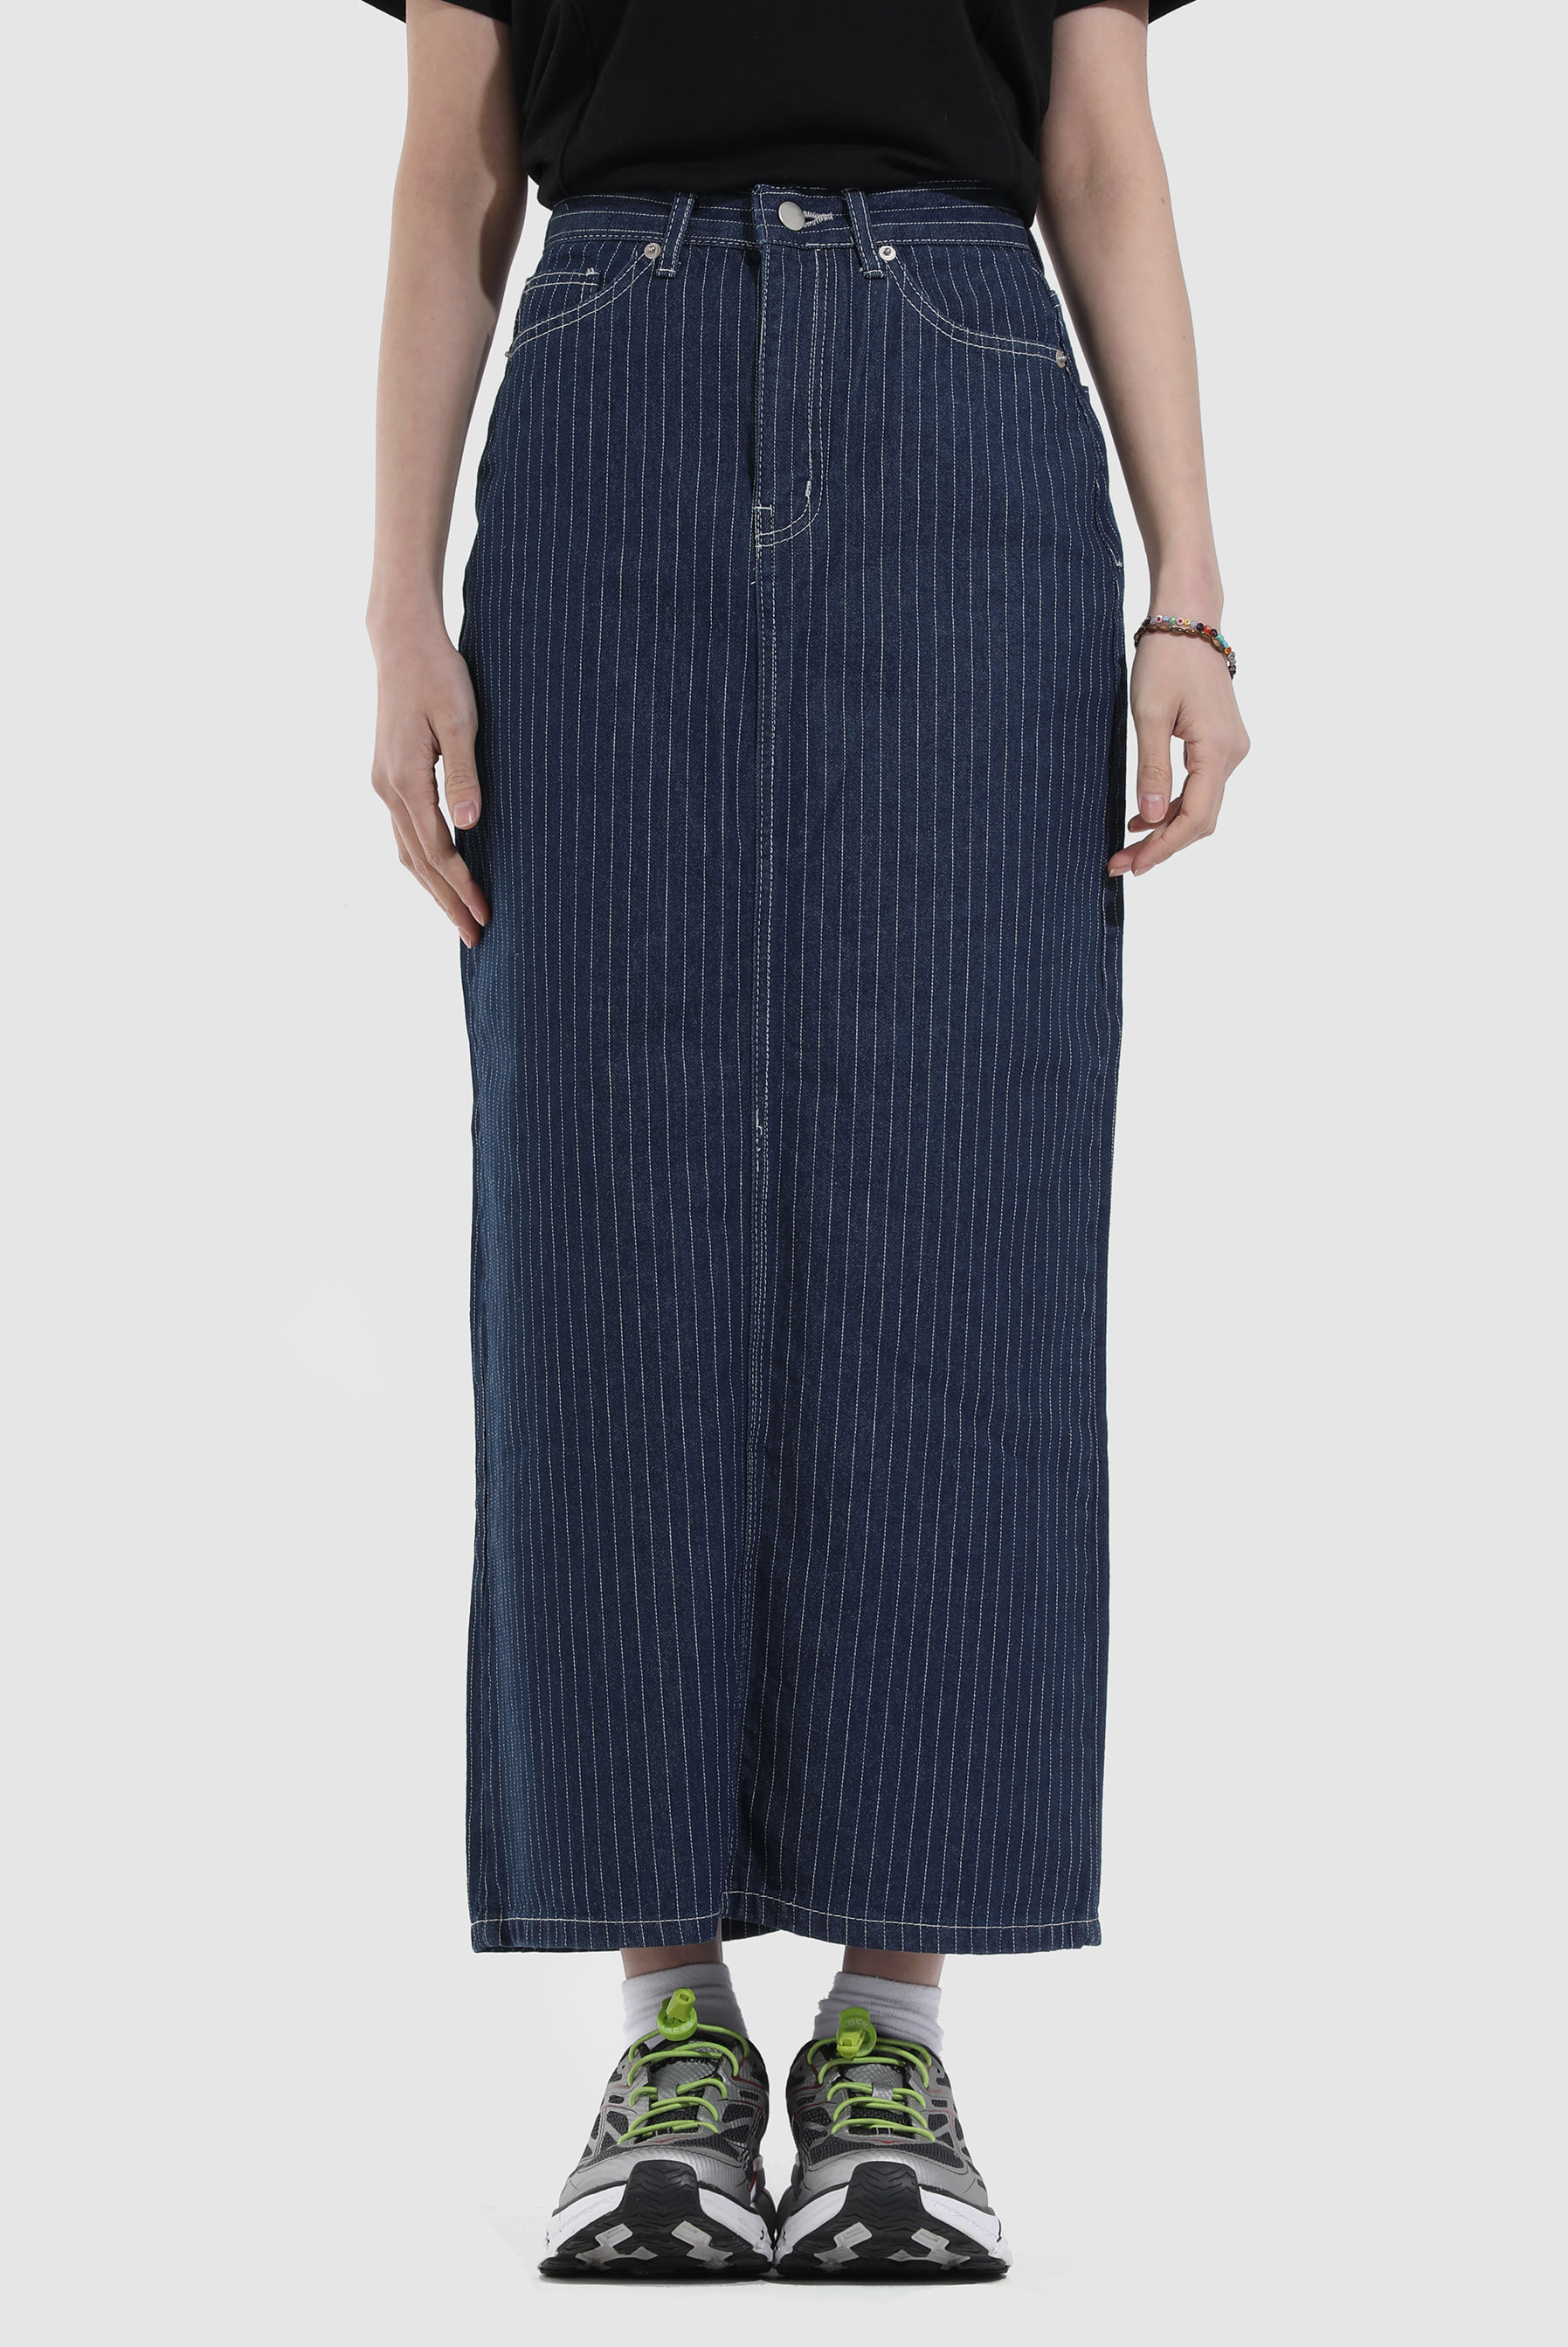 Stripe Maxi_Long Skirt